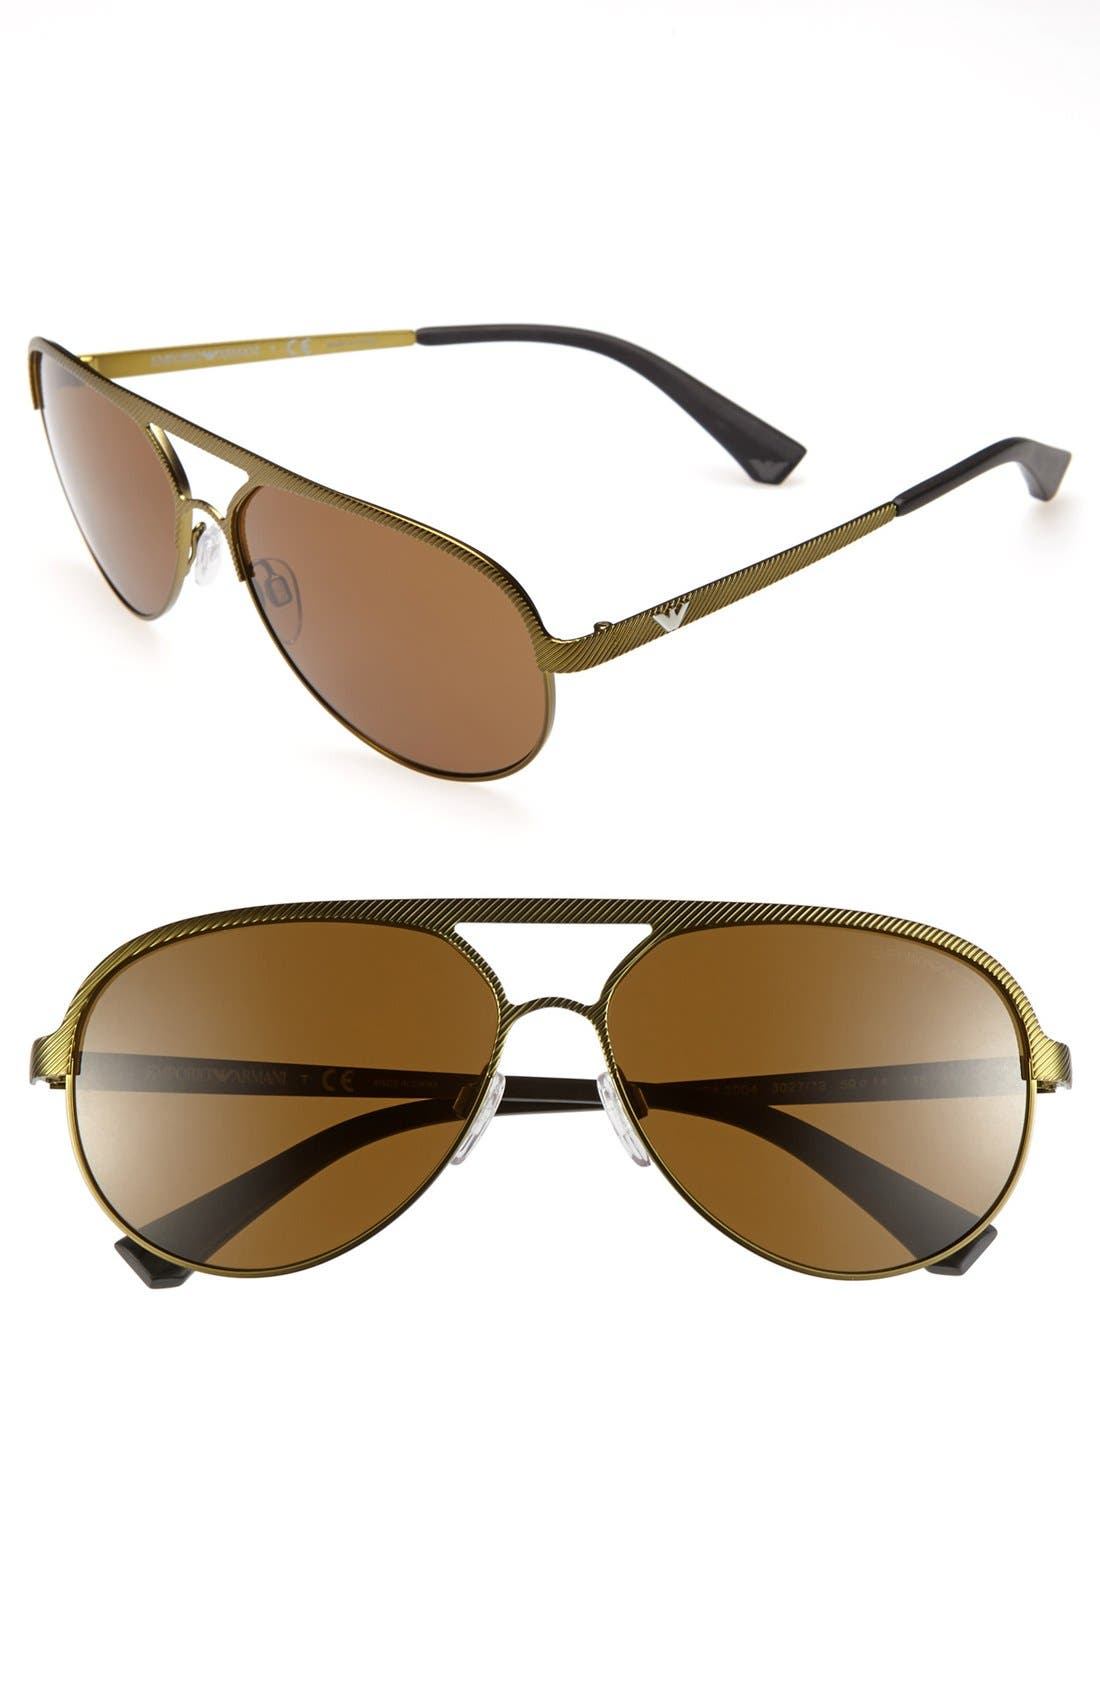 Main Image - Emporio Armani 59mm Aviator Sunglasses